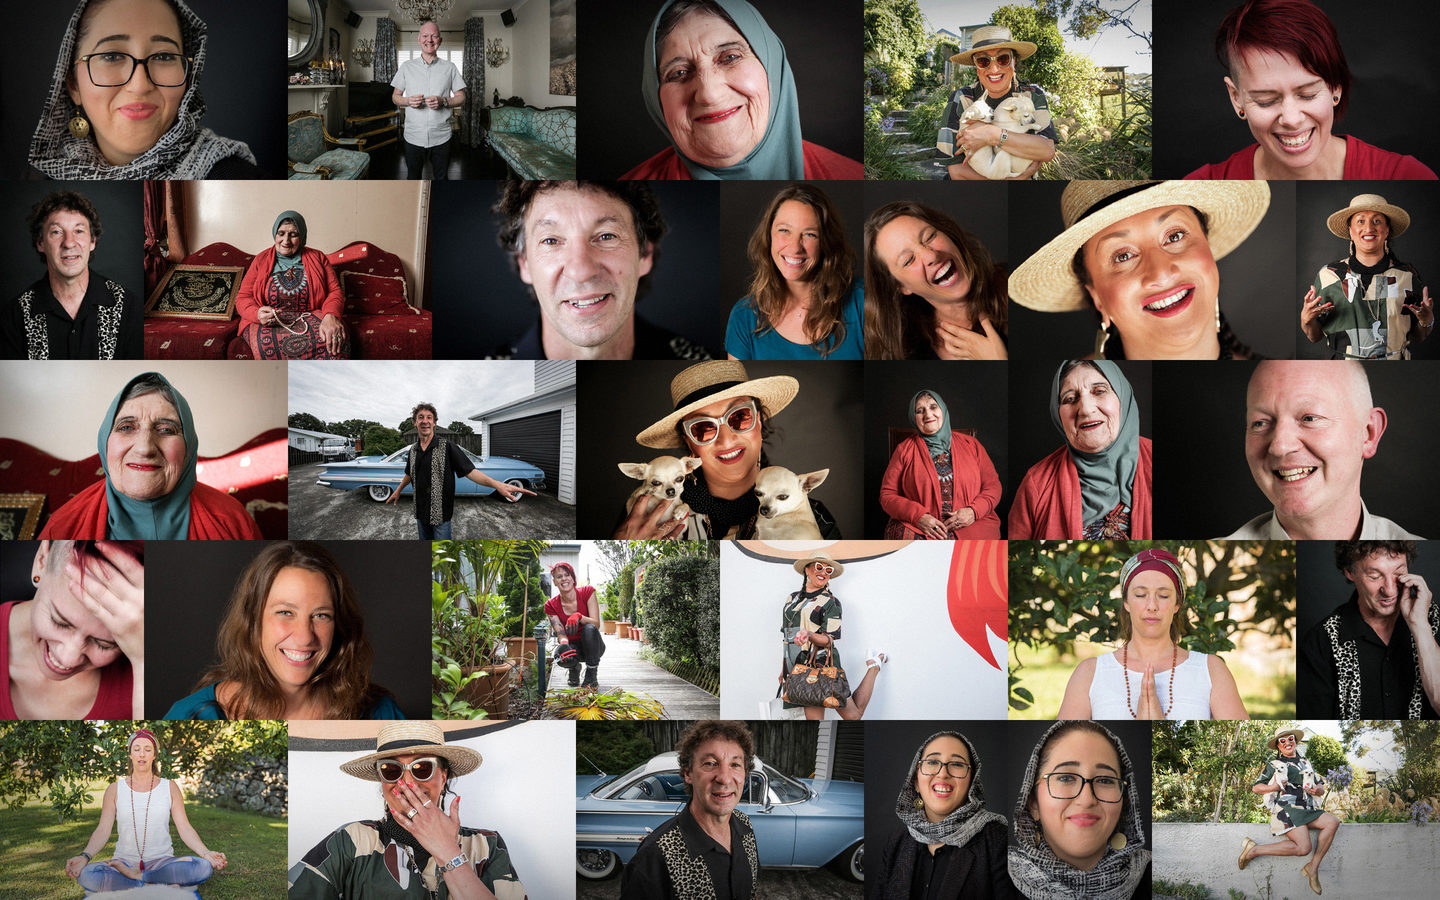 The many faces of the RNZ Joy Project, a look at happiness.